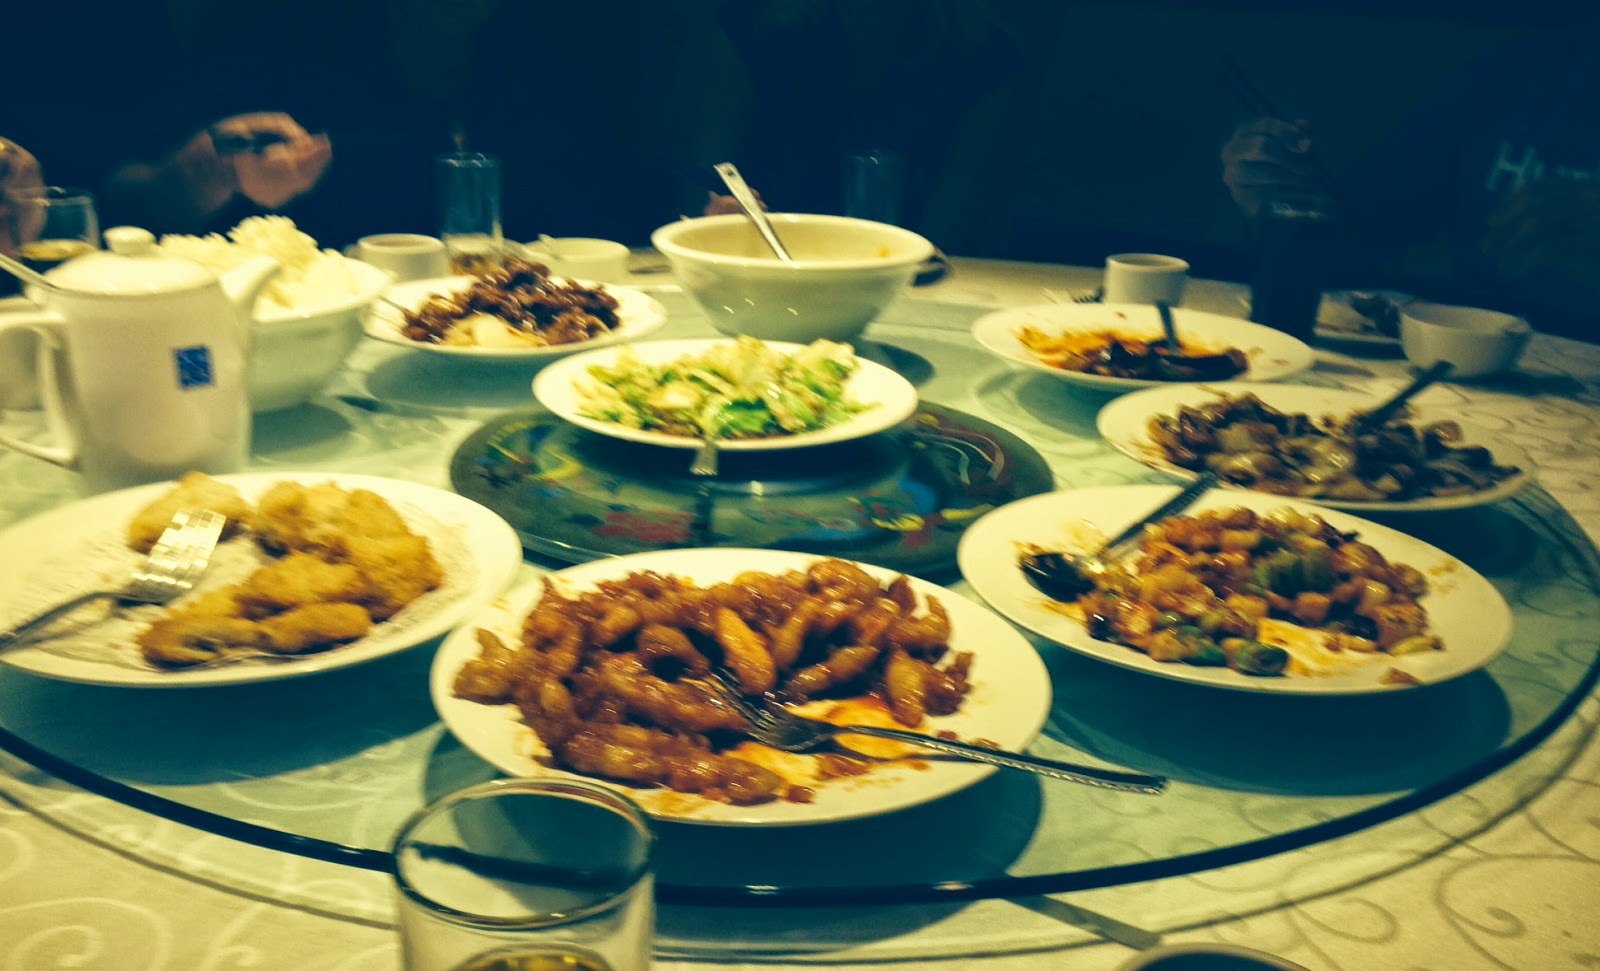 Chinese dining style - lazy susan